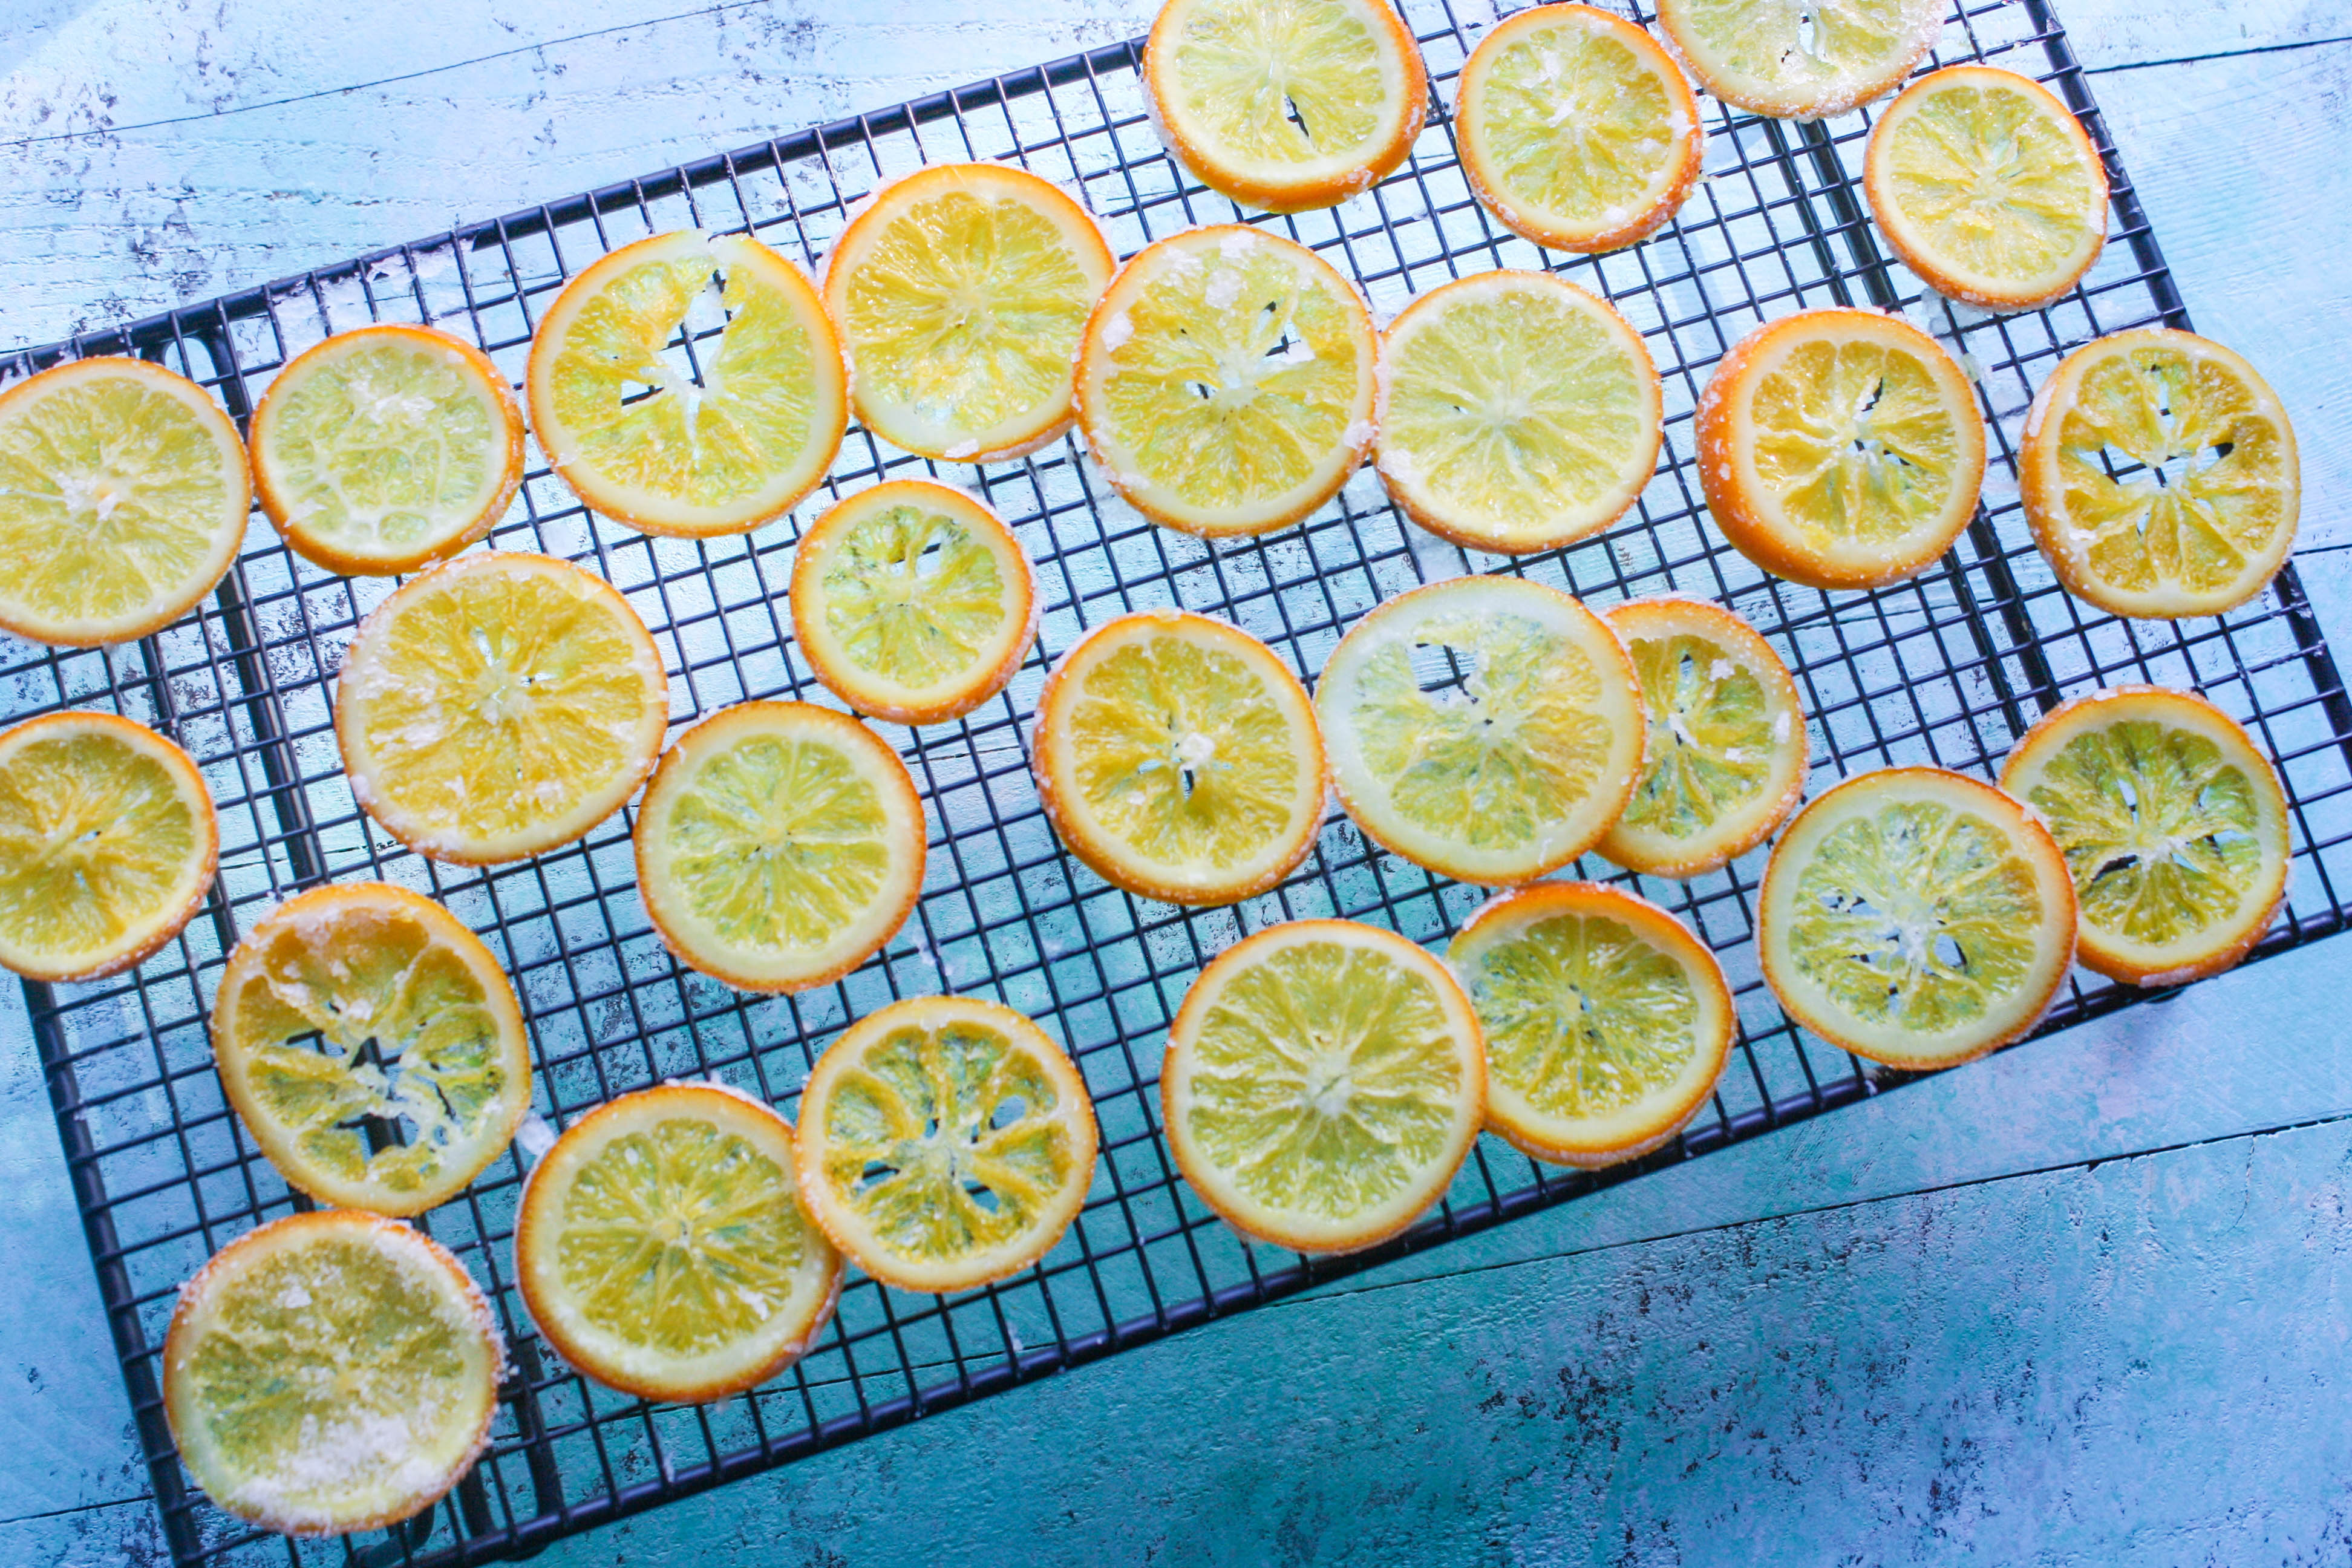 Candied Orange Slices are a bright and cheerful treat. You'll love these candied oranges, for sure!